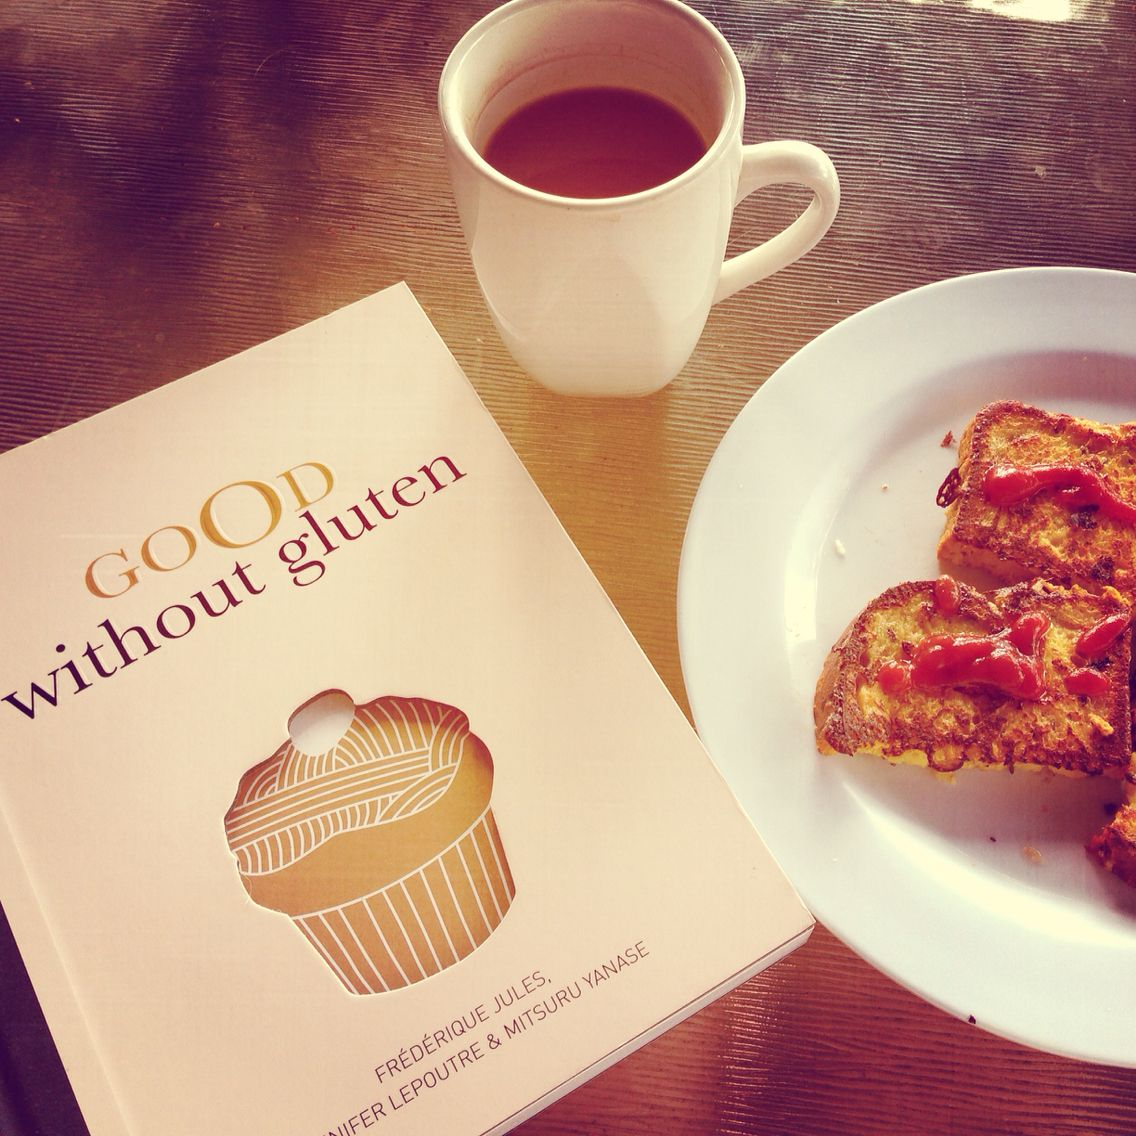 A serve of gluten-free French Toast to go with my new gluten-free French Cookbook... L'amoure x x